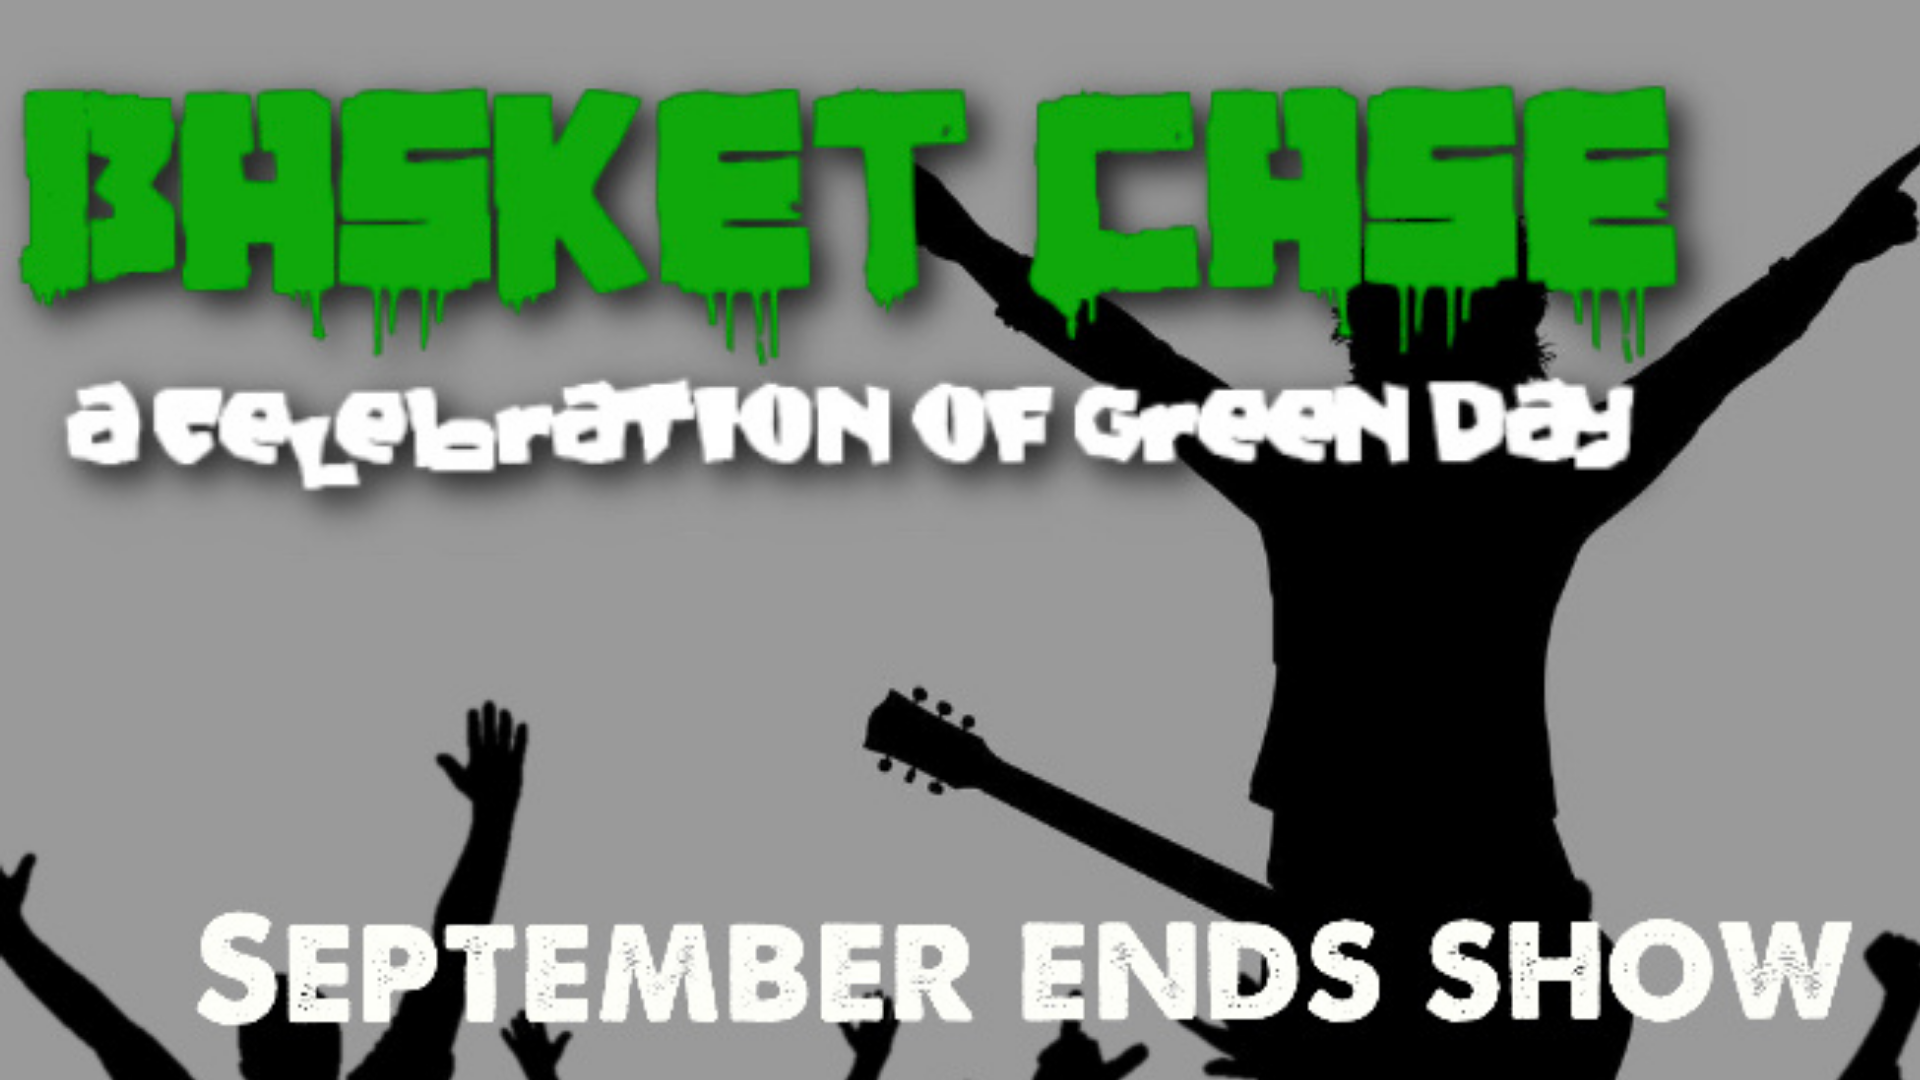 Promo image of Green Day Tribute: Basket Case